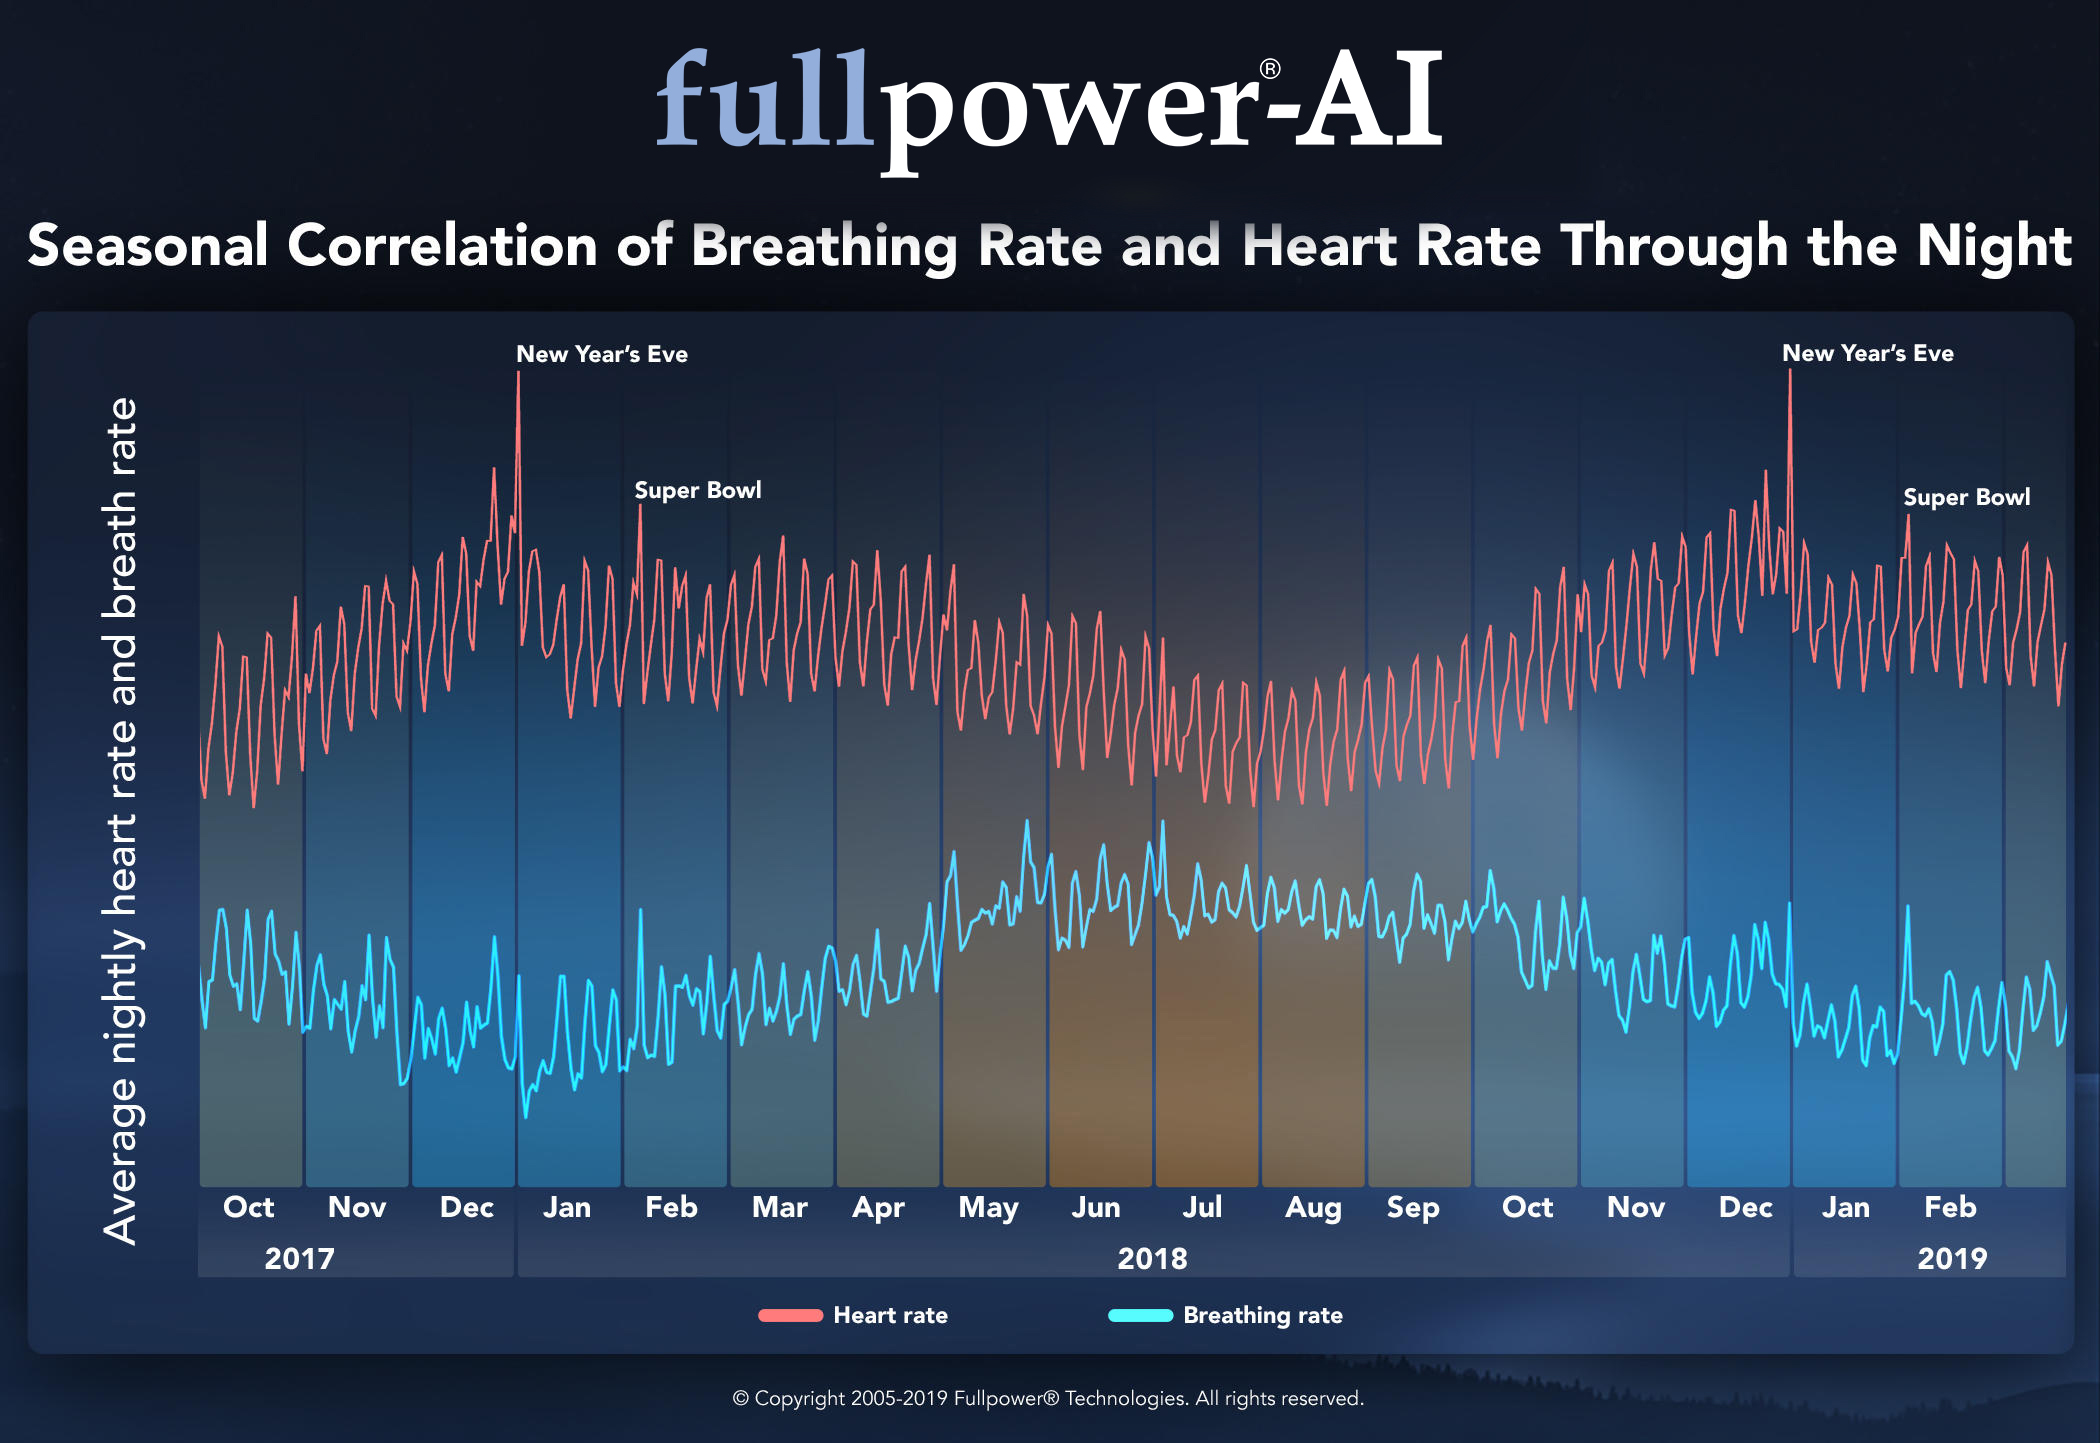 Seasonal Correlation of Breathing Rate and Heart Rate Through the Night